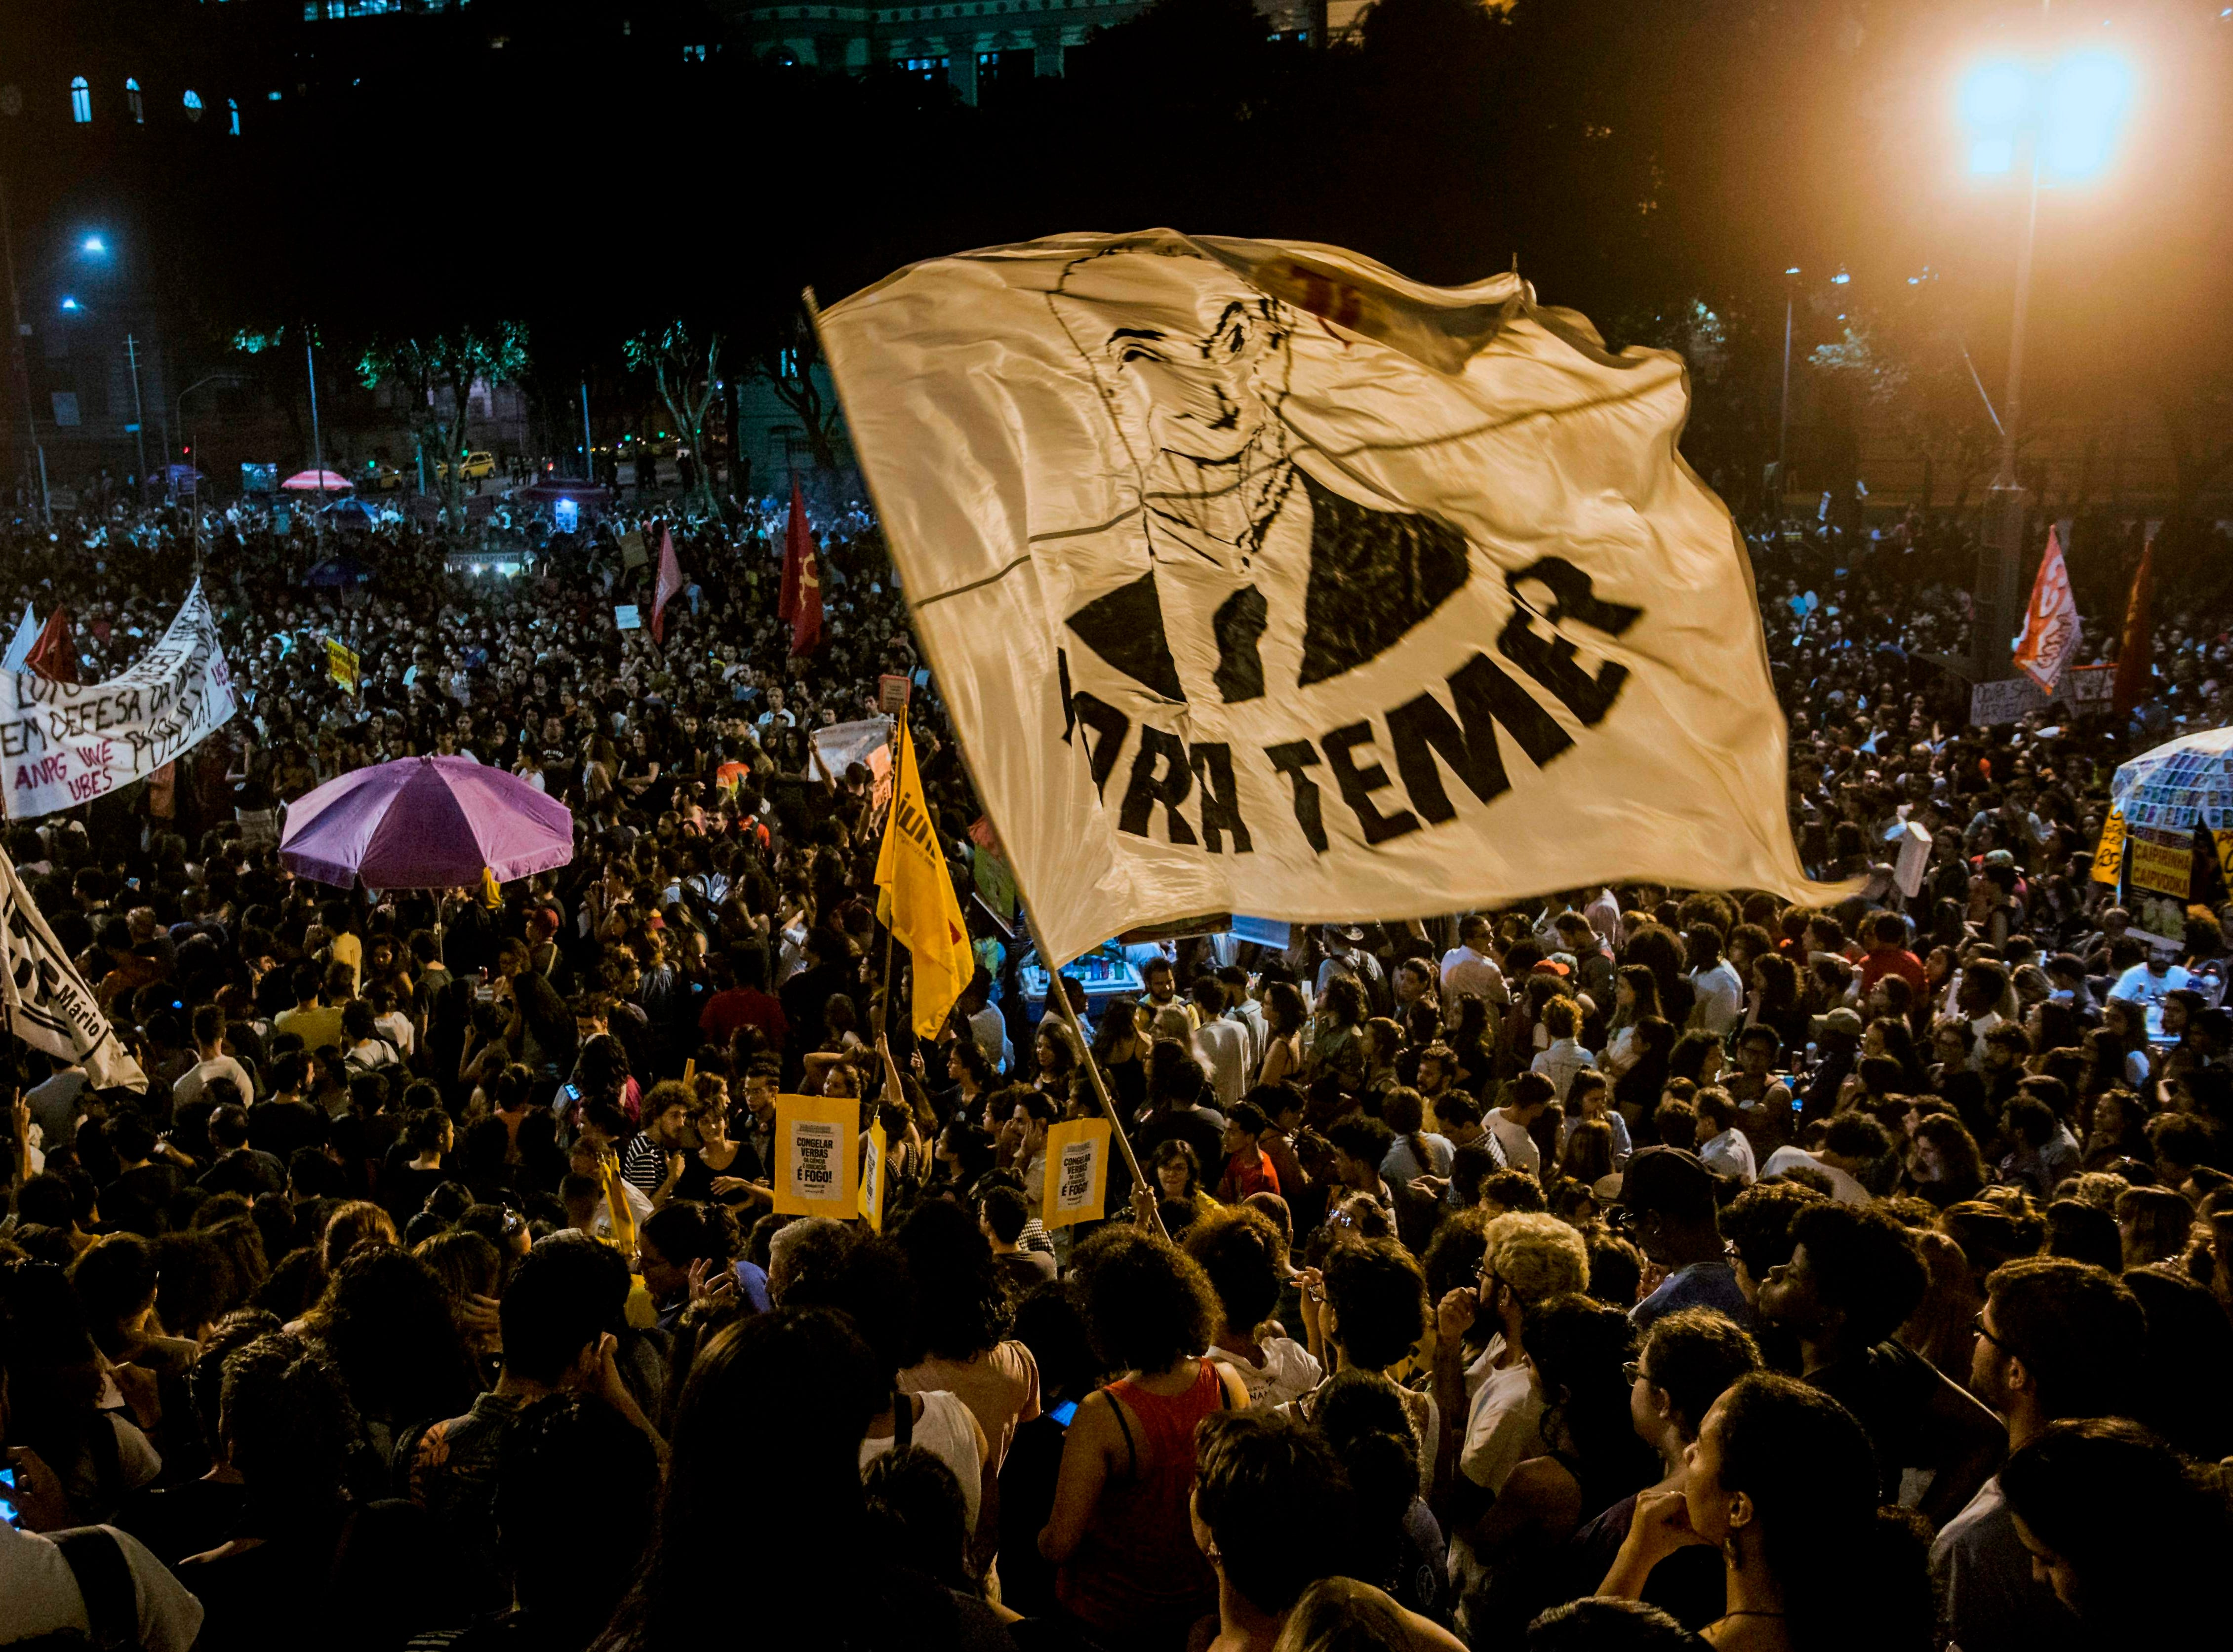 People wave a flag with the image of Brazil's presidente Michel Temer during a protest against the Brazilian government on Sept. 03, 2018, following a massive fire that ripped through Rio de Janeiro's treasured National Museum.